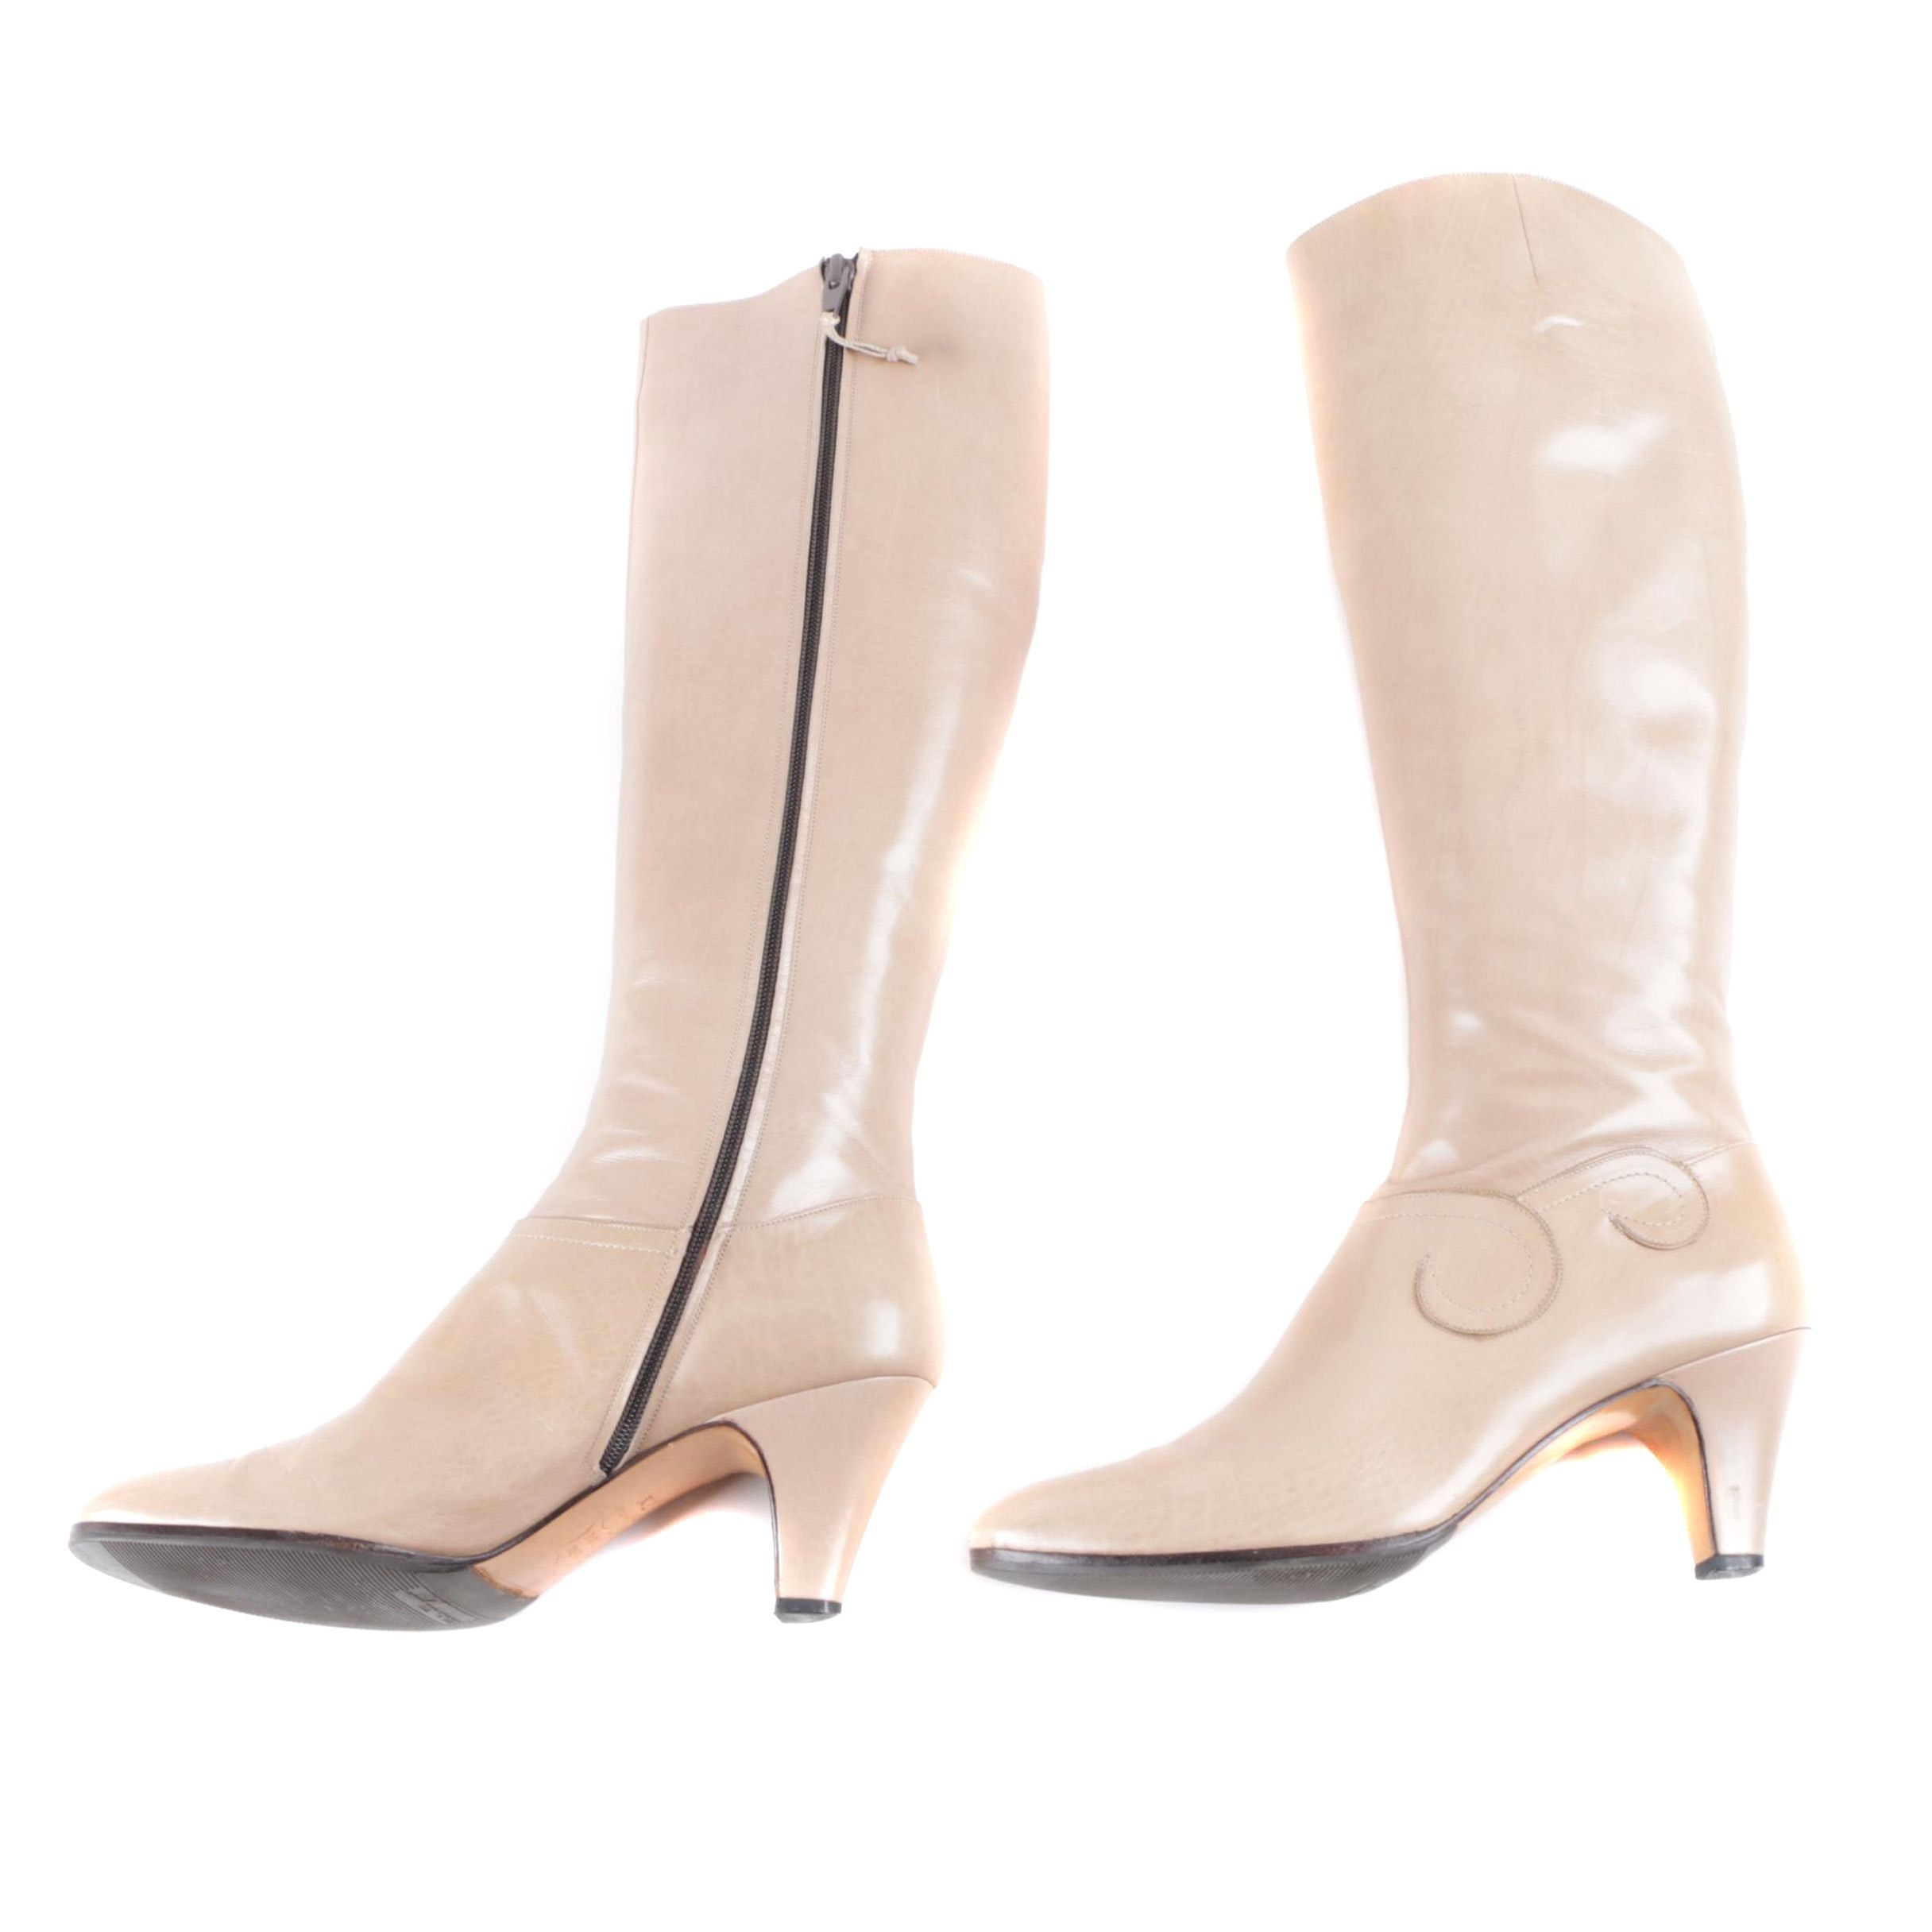 Women's Vintage Salvatore Ferragamo Knee-High Taupe Leather Boots